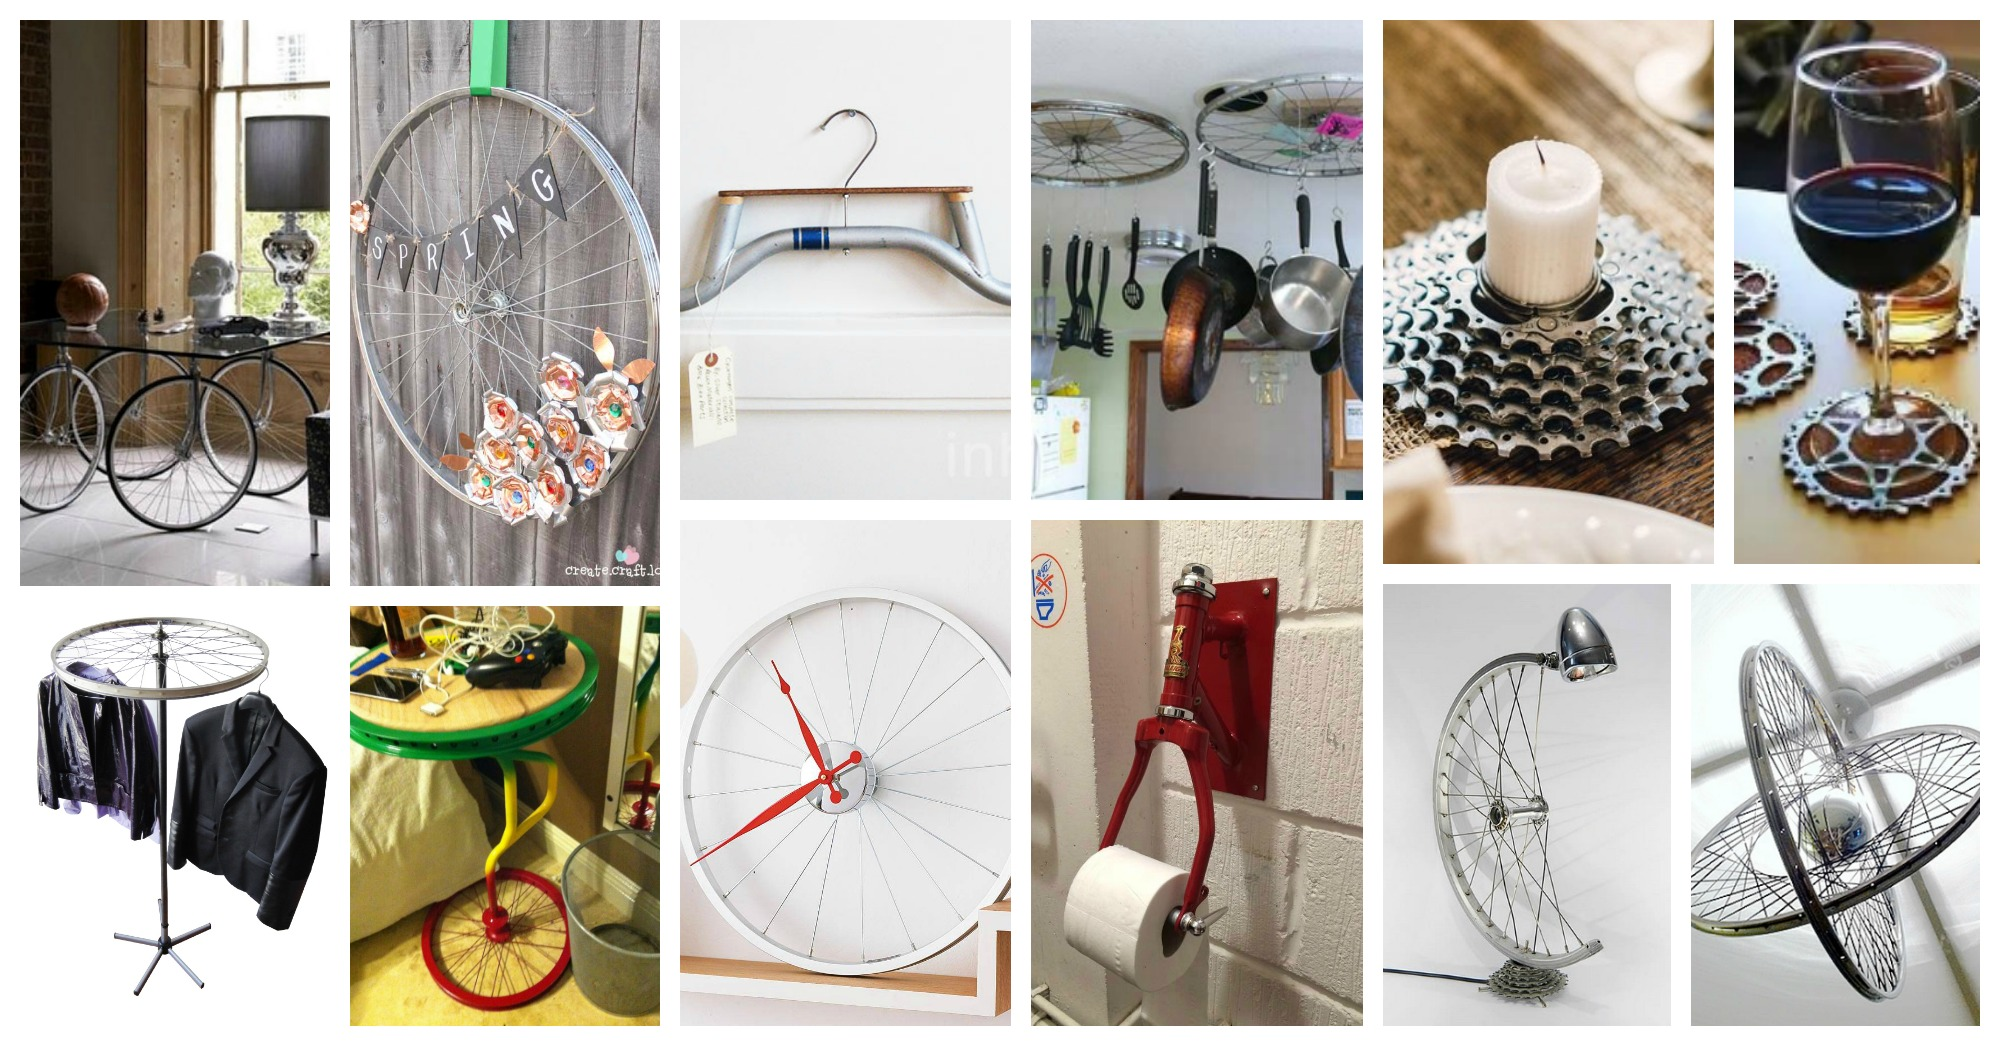 How To Repurpose Bike Parts In Home Decor In Fantastic Ways